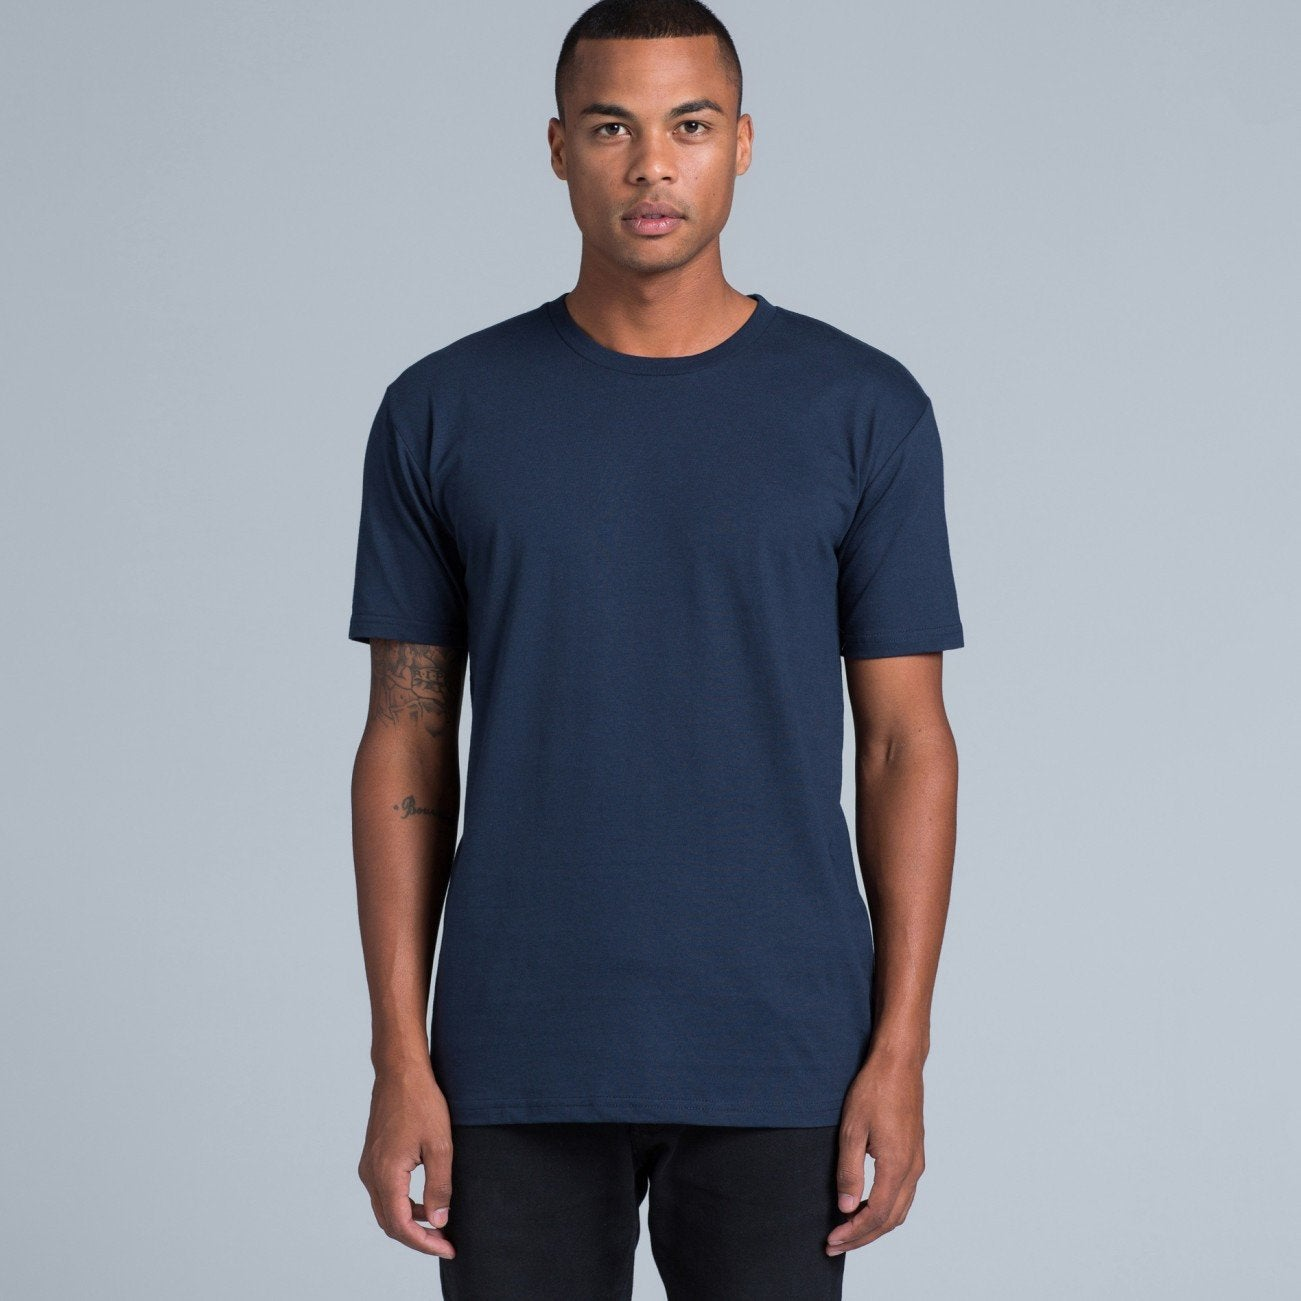 ASC Mens Staple Tee